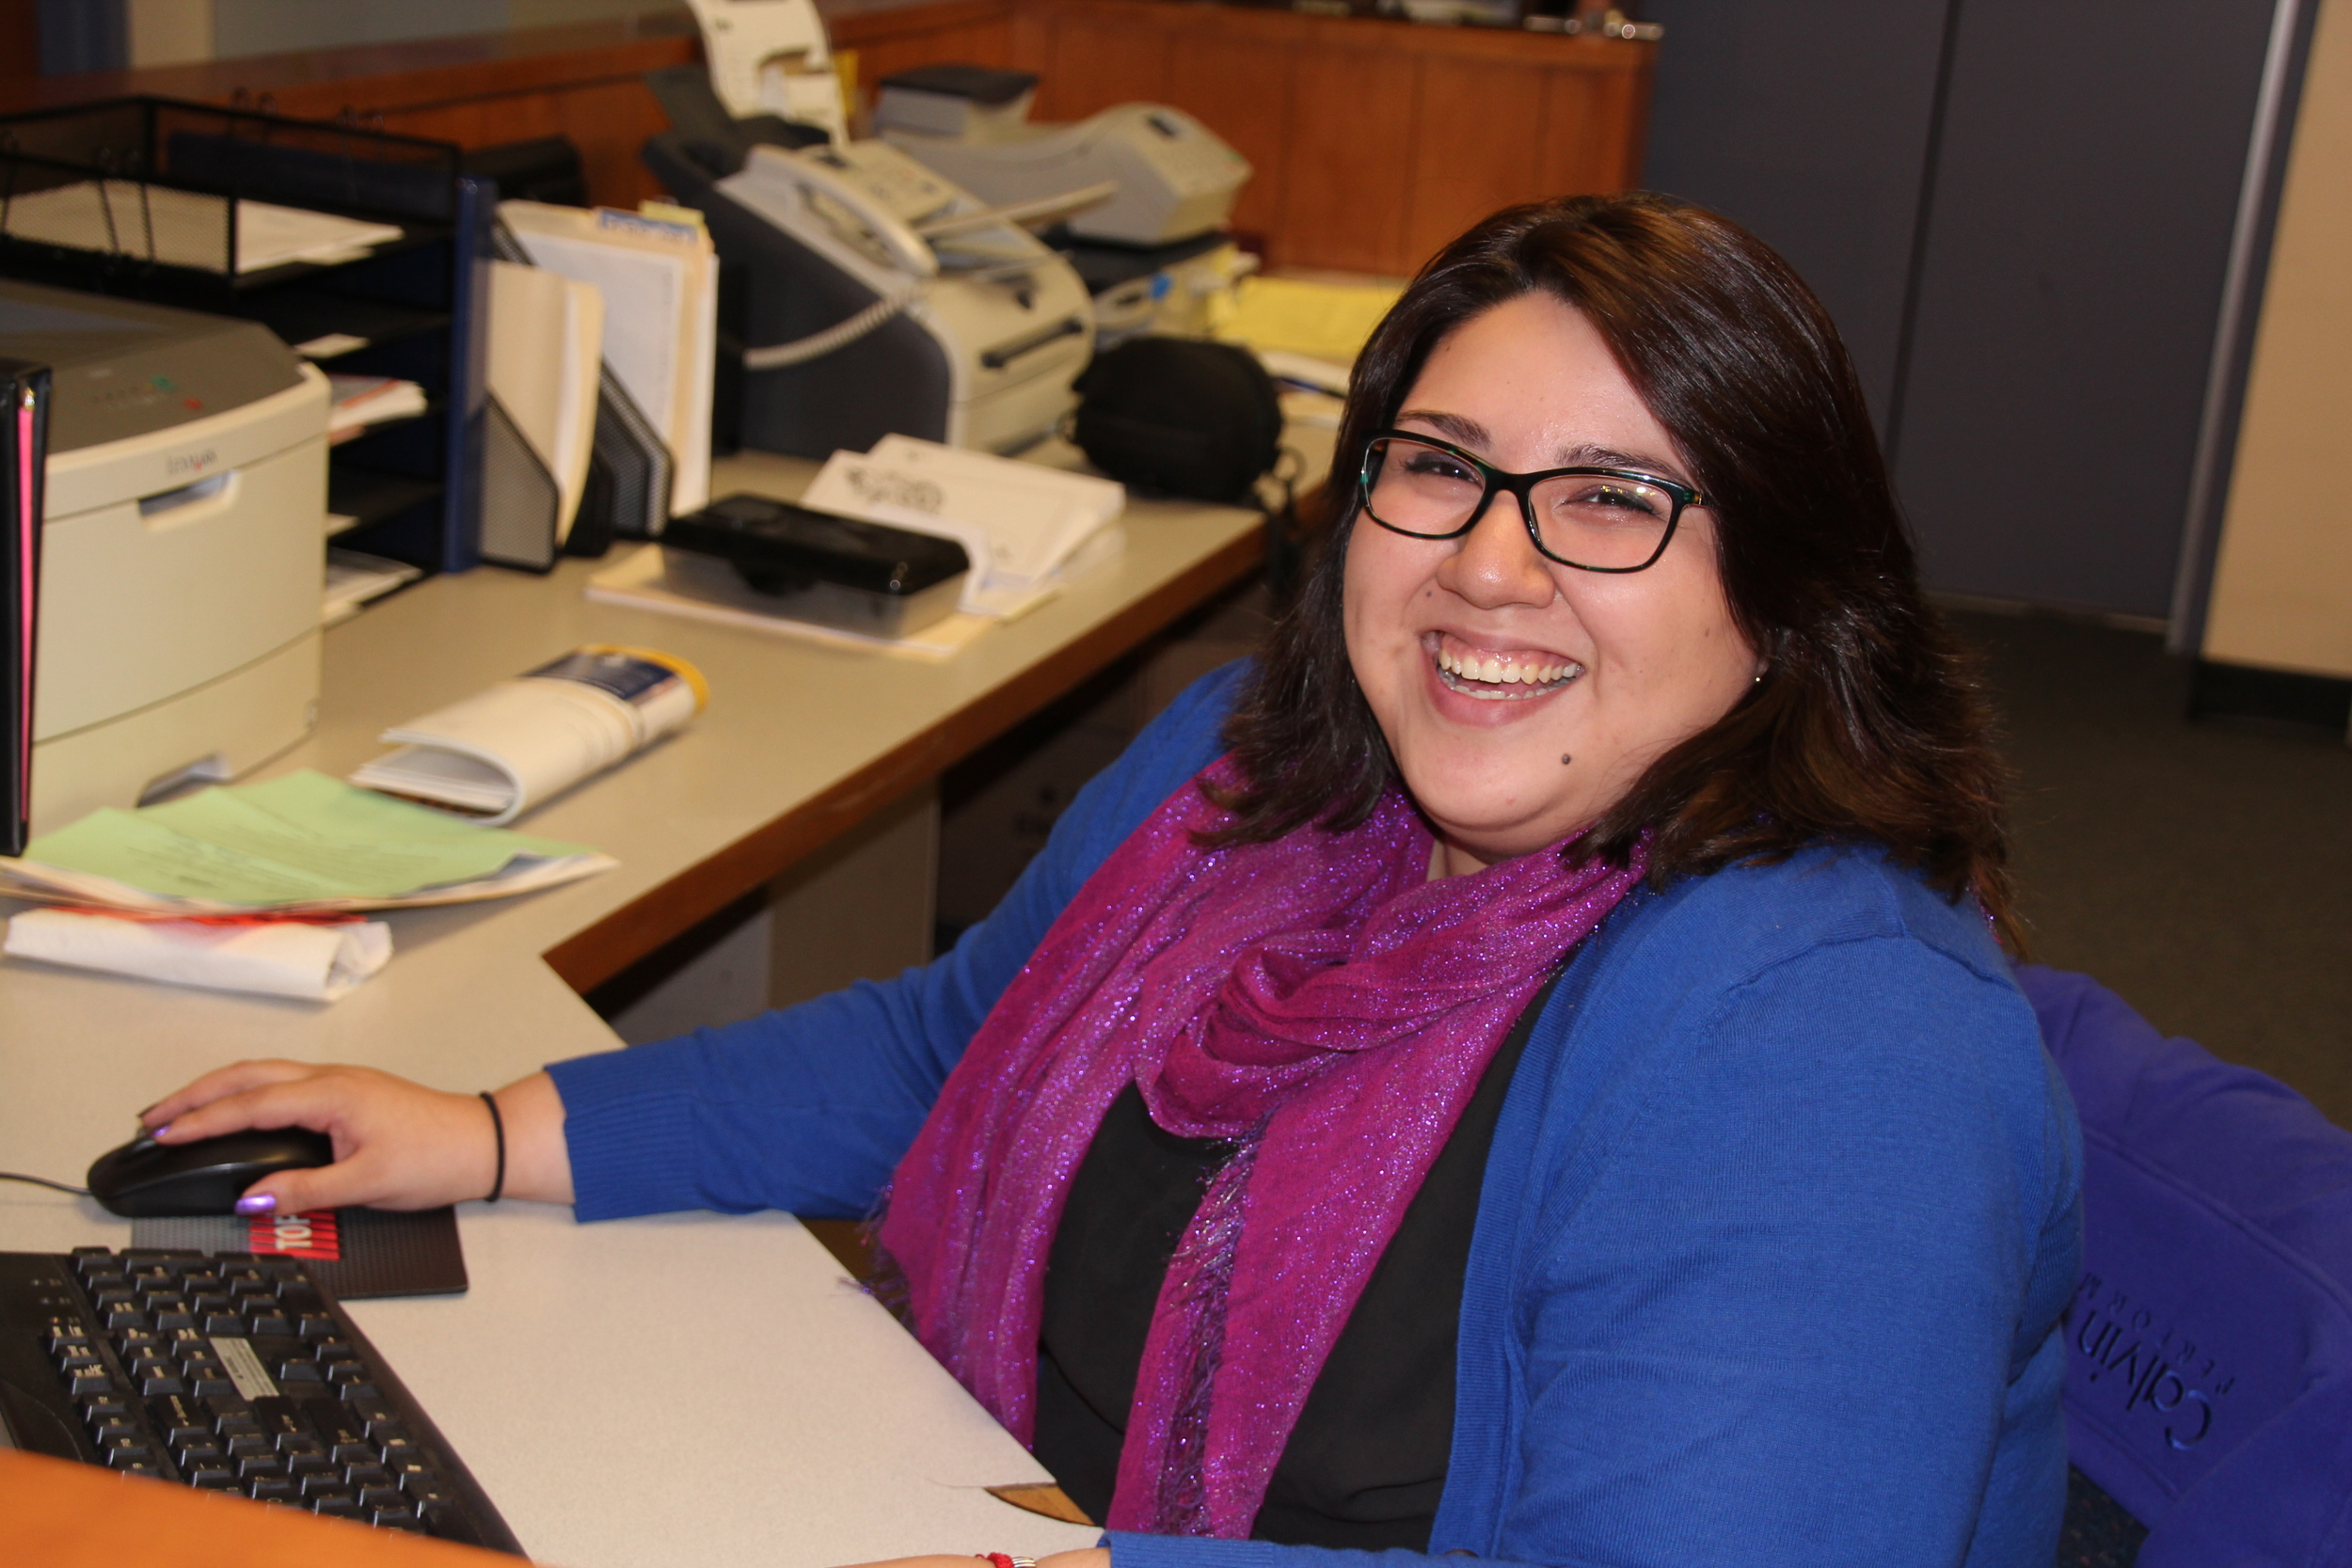 Evelyn works both as the front desk assistant and the MAP Program Assistant.